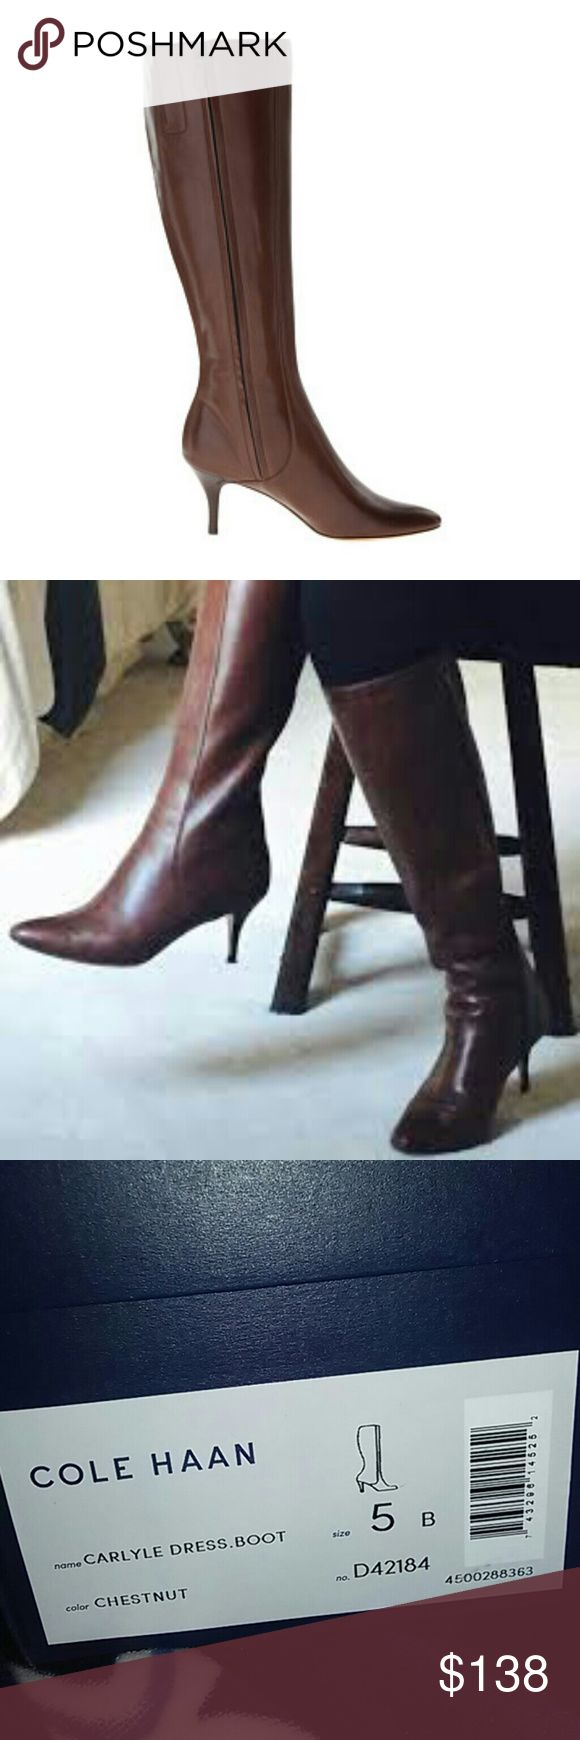 """Brand New in Box Cole Hahn Brown Knee-High Boots 5 ThisBrand New in box Cole Hahn Carlyle  dress boot in size 5 will be the finishing touch on your stylish look. Absolutely gorgeous and high-end. A fall must have!  Smooth leather upper.  Plain almond-shaped toe.  Side zip closure.  Full leather lining.  Fully padded sock lining.  Stacked heel.  Buffed leather sole.  Imported.  Measurements: Heel Height: 2 3⁄4"""" Calf Circumference: 14"""". Shaft: 16 1⁄2""""  Feel free to ask any questions. Bundle…"""